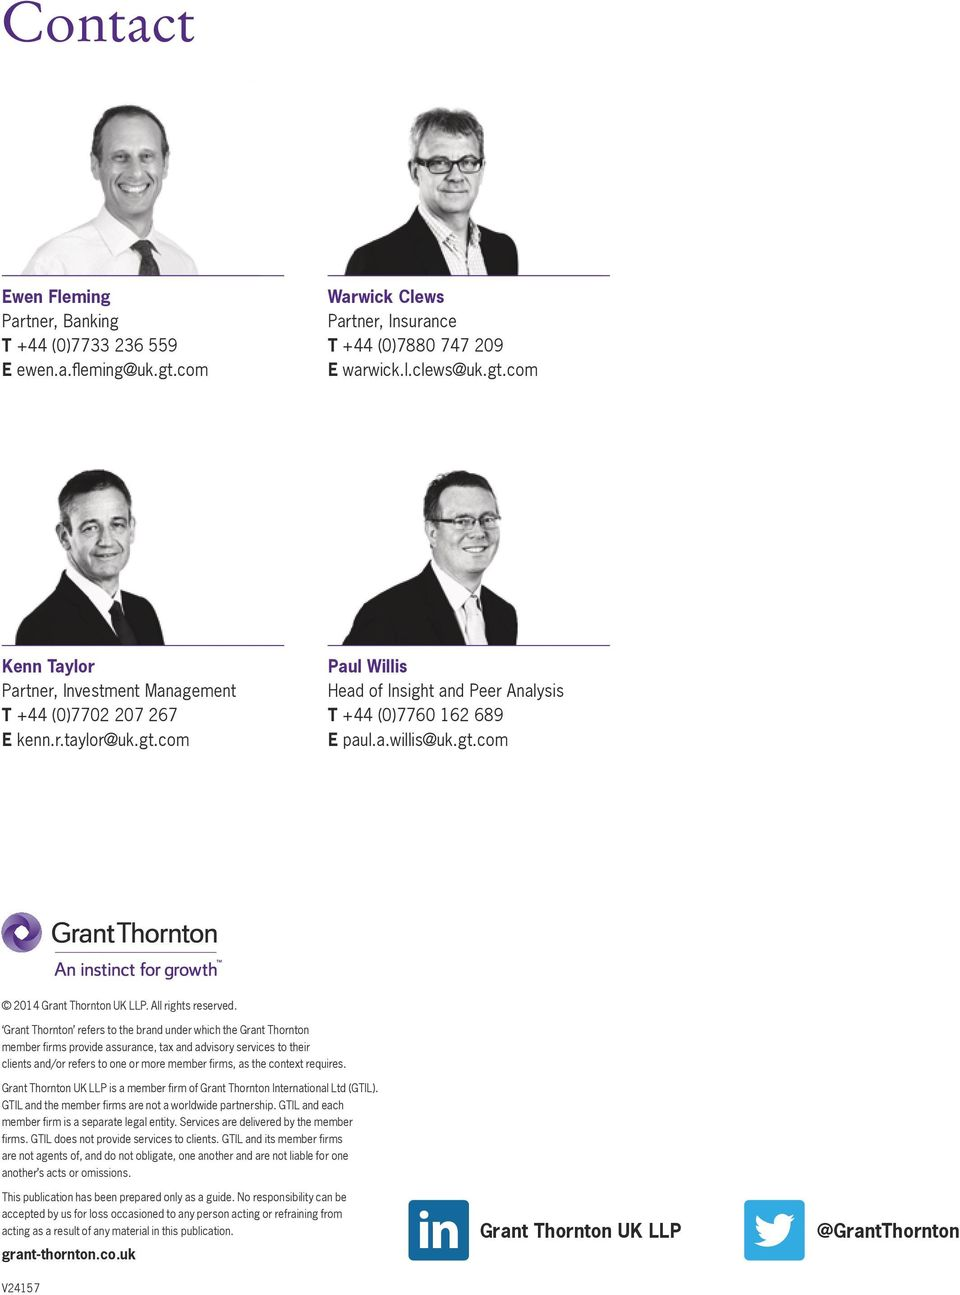 Grant Thornton refers to the brand under which the Grant Thornton member firms provide assurance, tax and advisory services to their clients and/or refers to one or more member firms, as the context